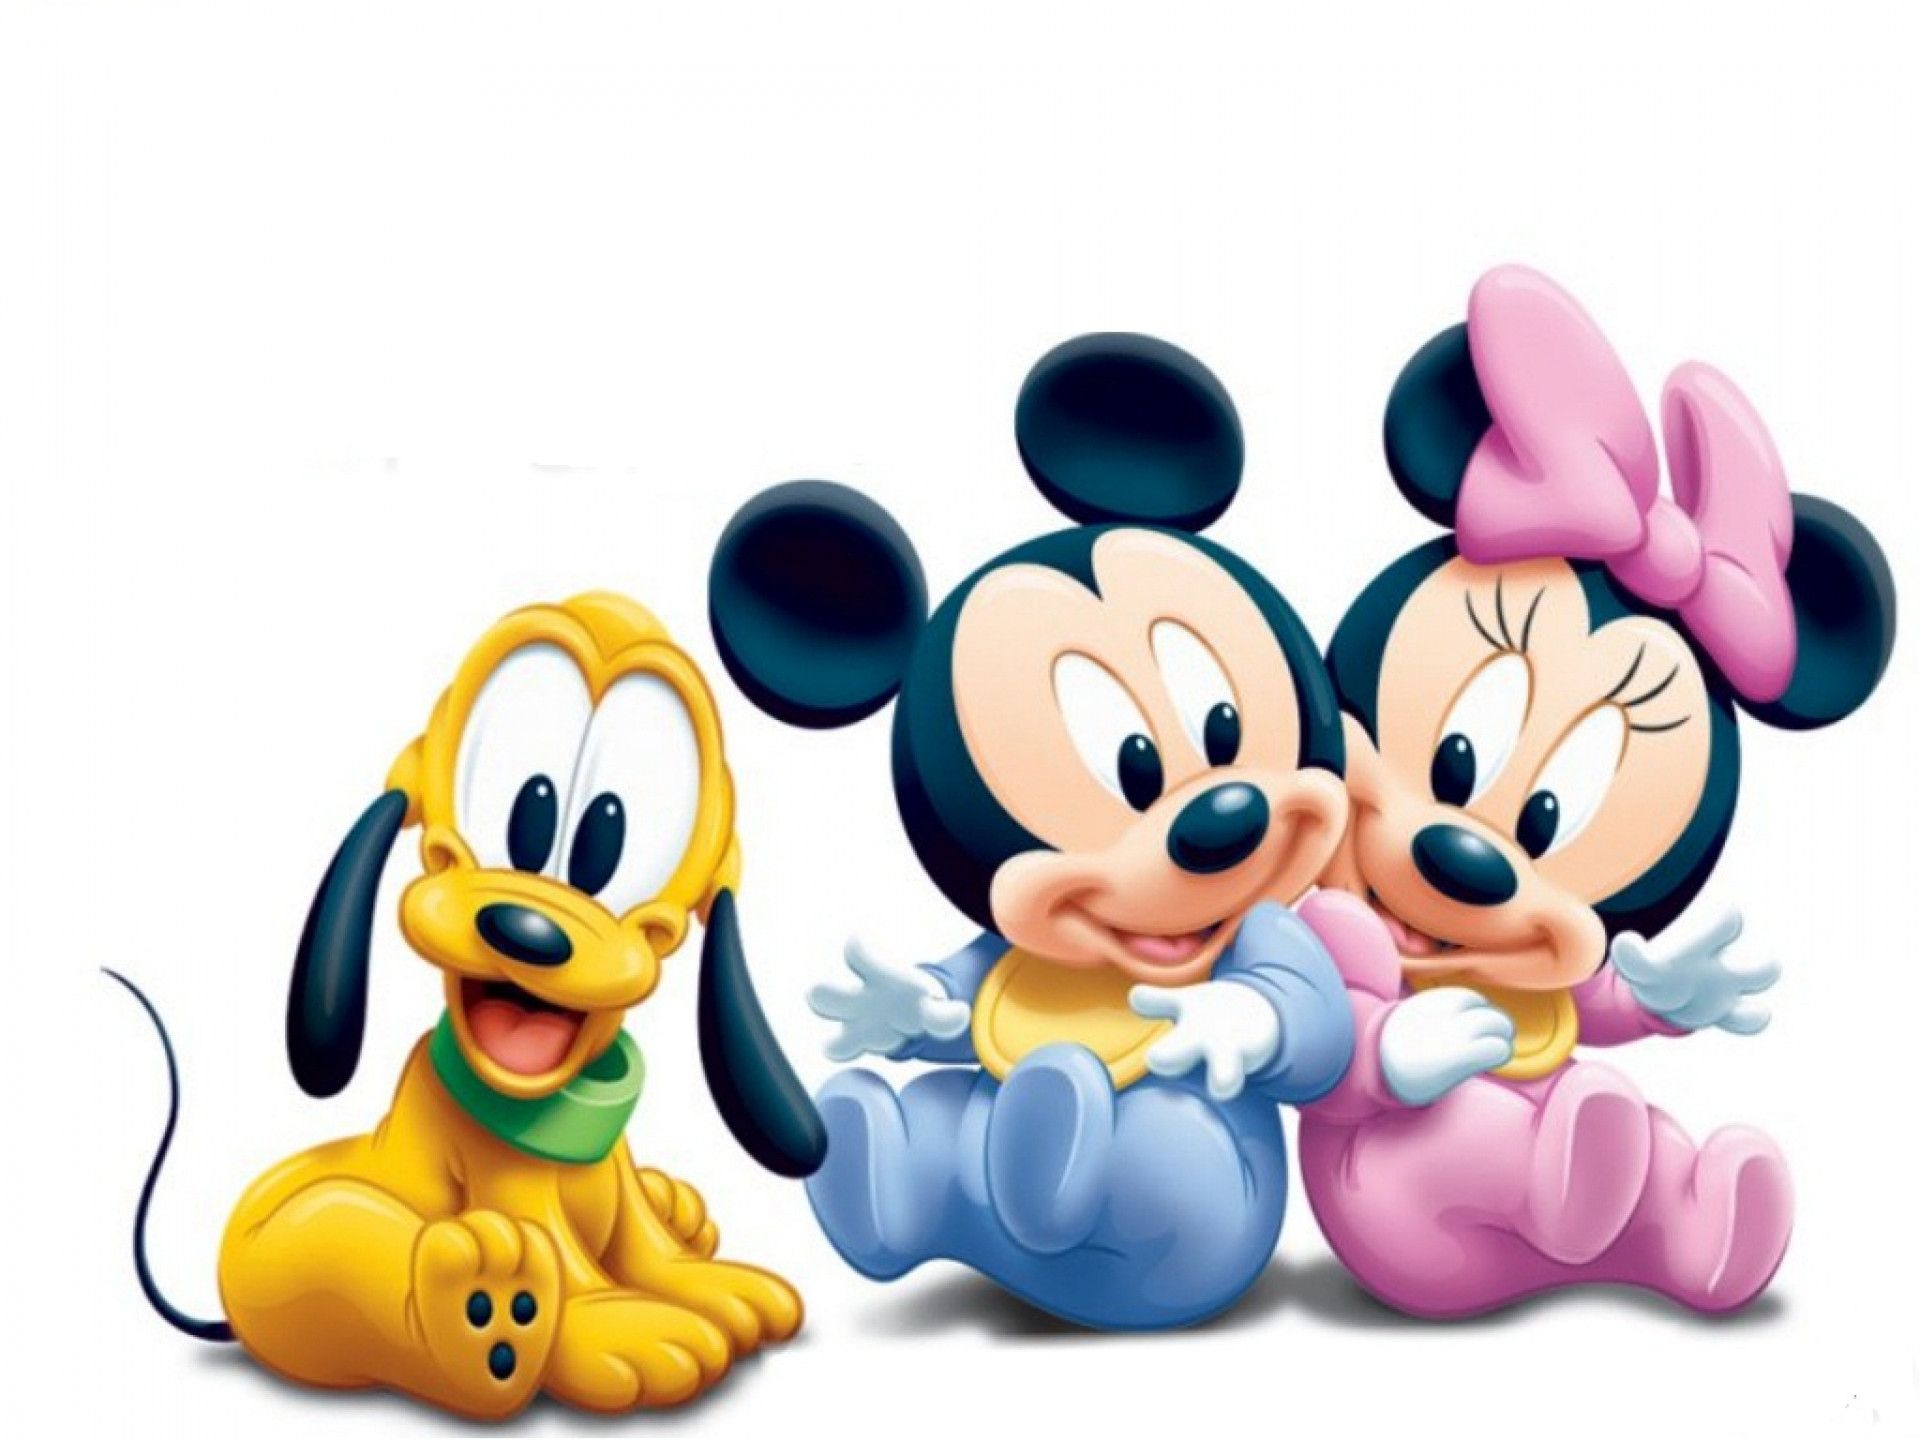 Mickey Mouse HD Images : Get Free top quality Mickey Mouse HD Images for  your desktop - Mickey Head PNG HD